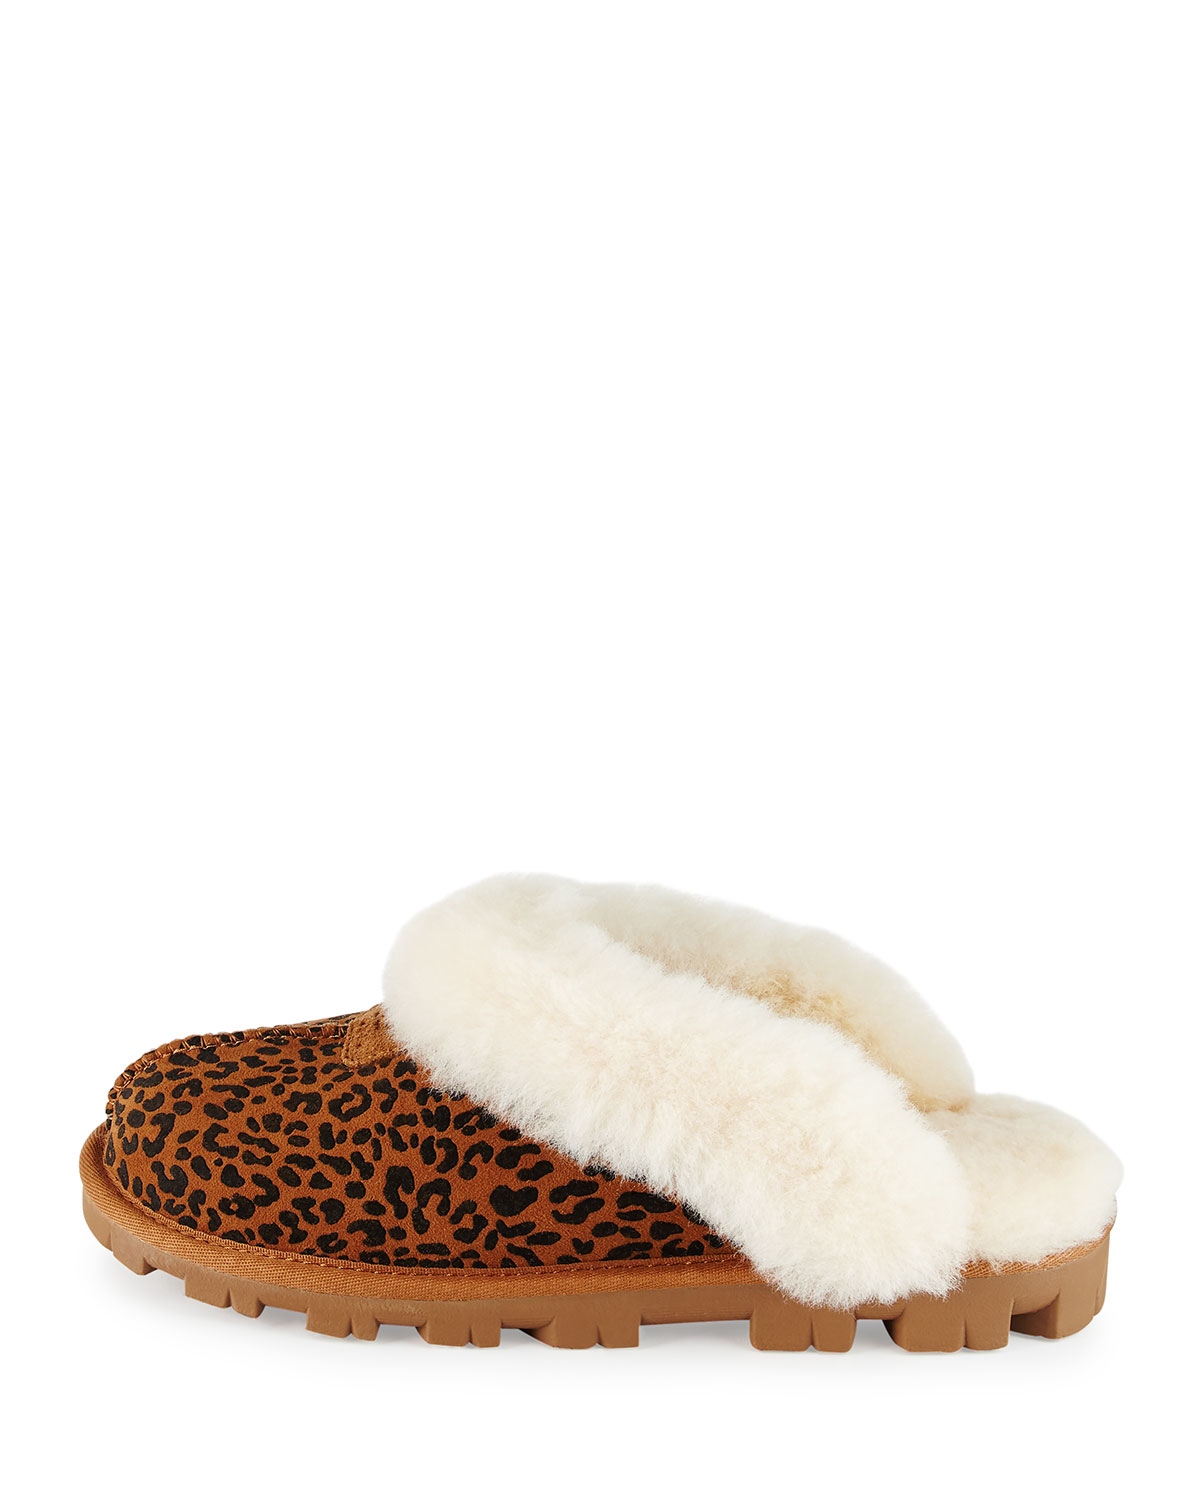 08b34ad3a2f Ugg Coquette Slippers For Women - cheap watches mgc-gas.com